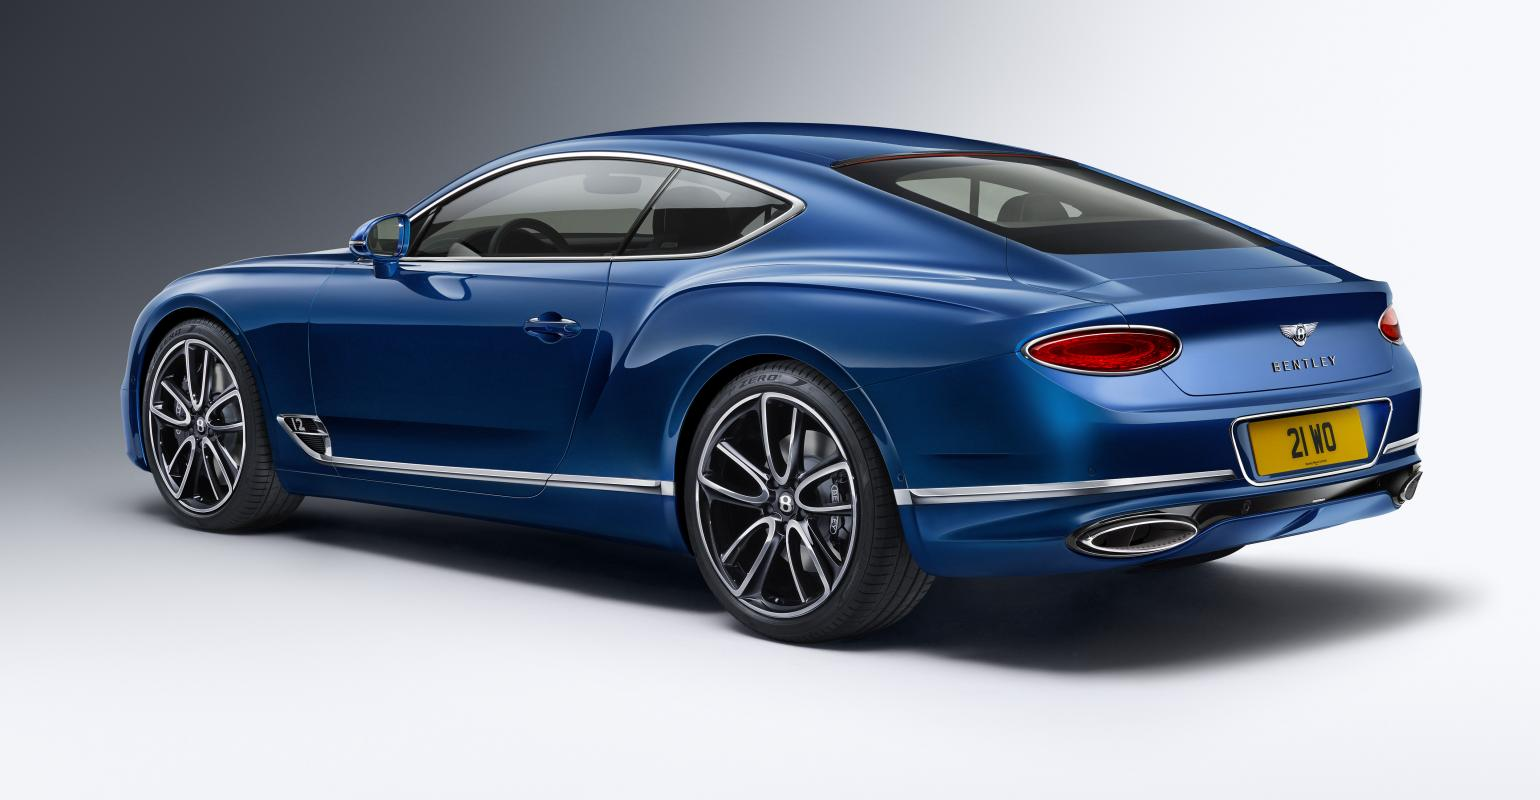 Bentley Technology Underpins Luxury In Newest Continental S Coupe